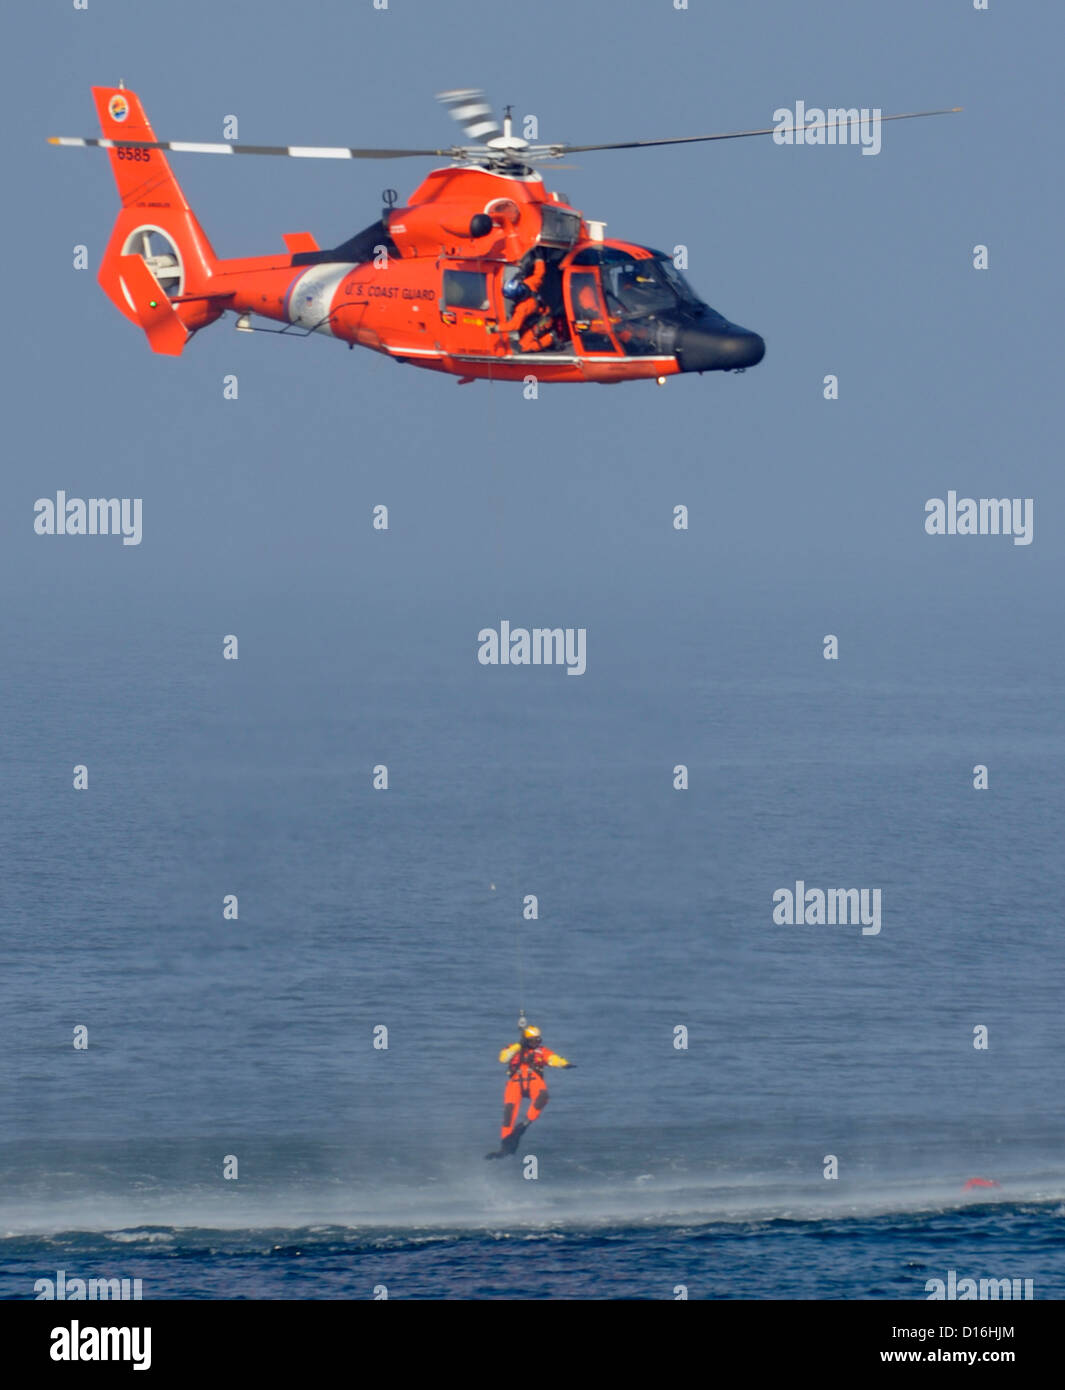 HERMOSA BEACH, Calif. - Petty Officer 1st Class Ty Aweau, an Aviation Survival Technician, conducts rescue swimmer - Stock Image